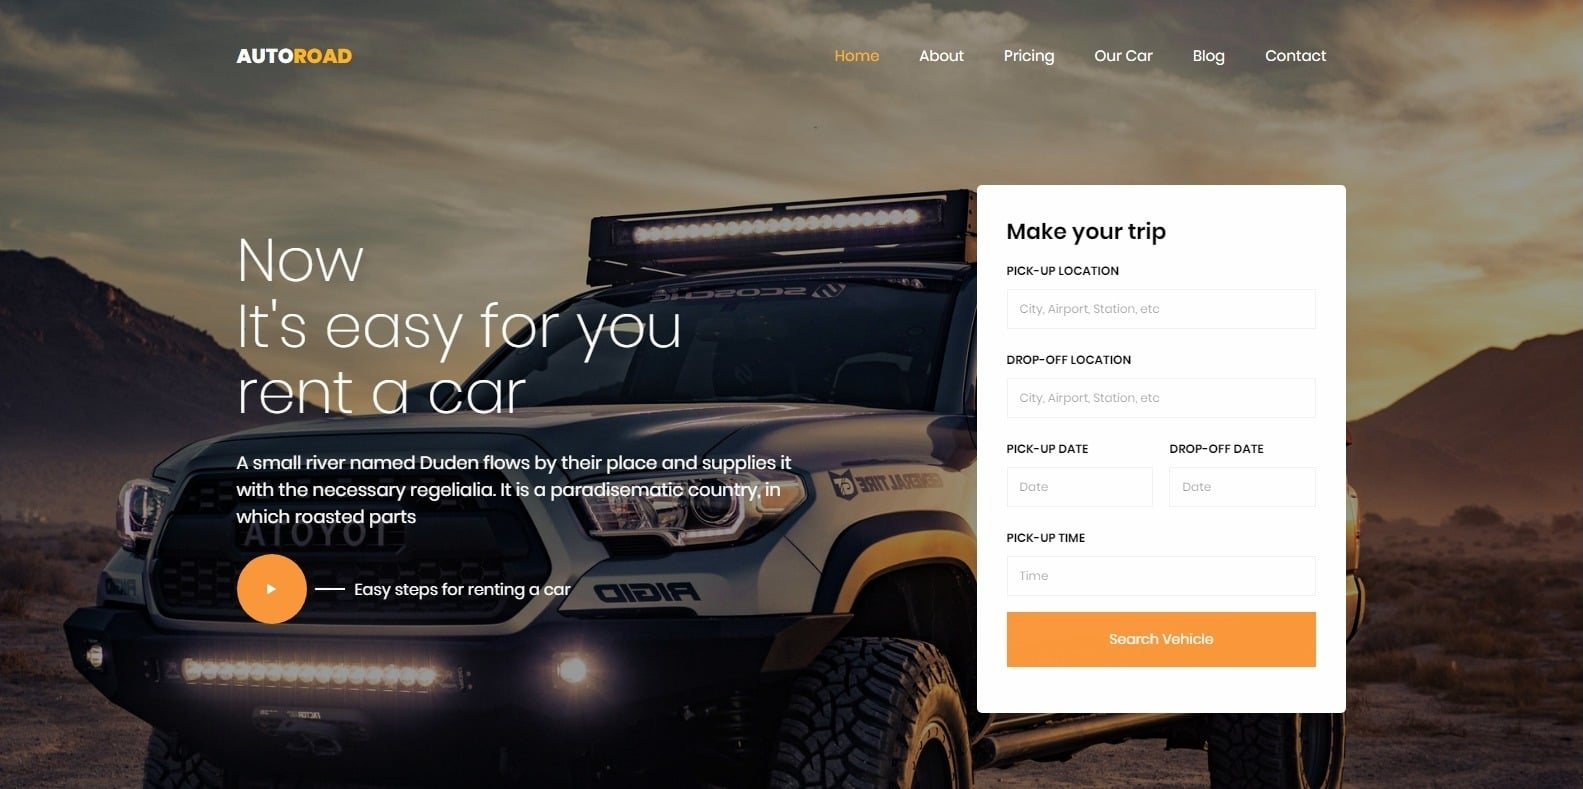 autoroad-transportation-website-template